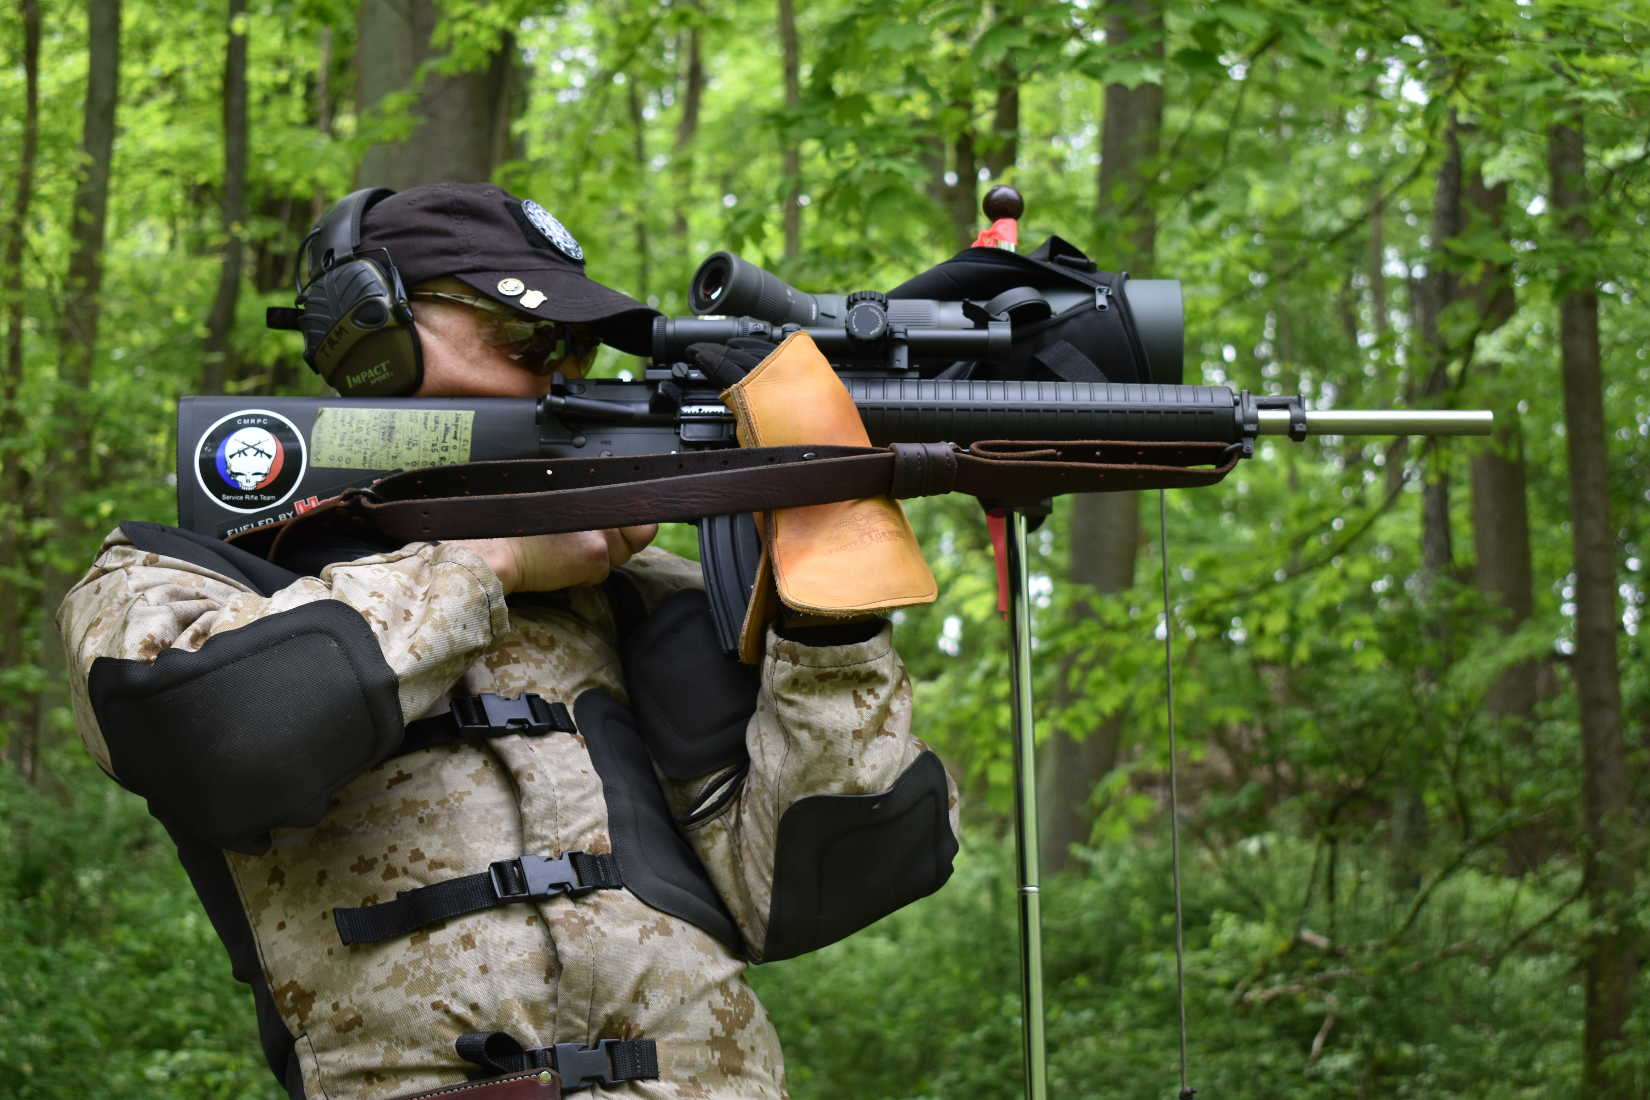 High Power Service Rifle Competition: Mastering the Basics of the Standing Position